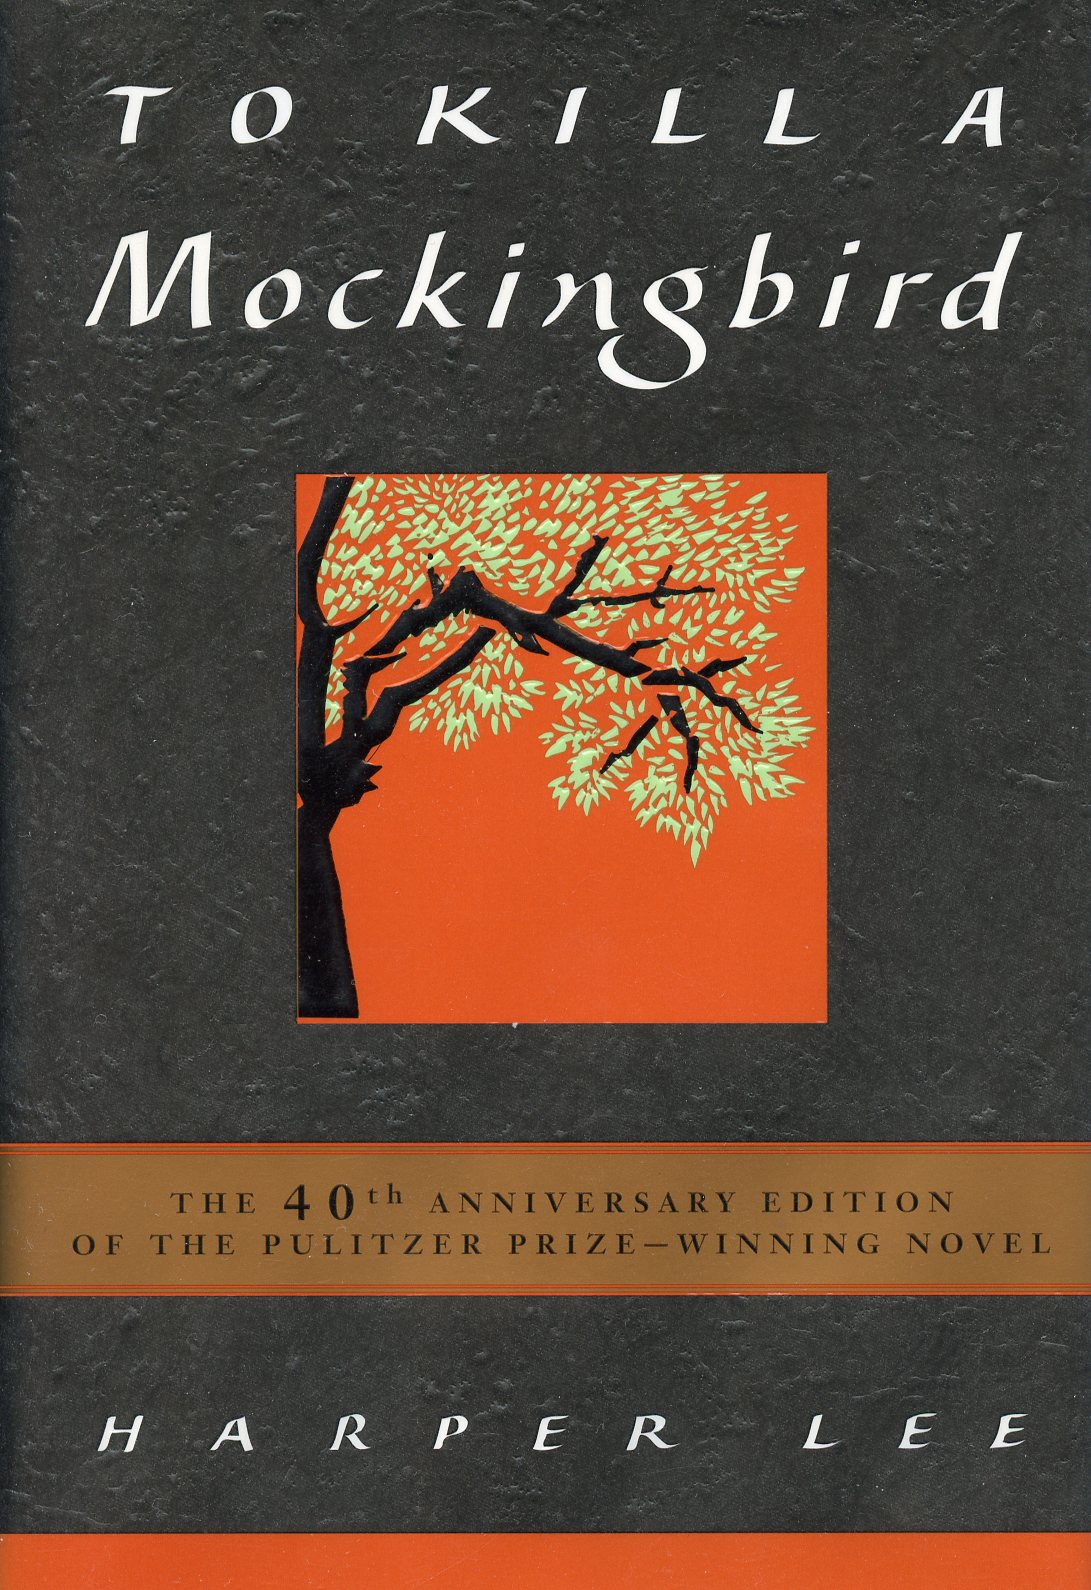 to kill a mockingbird sar To kill a mockingbird is set in the small, rural town of maycomb, alabama, during the early 1930s the character of atticus finch, scout's father, was based on lee's own father, a liberal alabama lawyer and statesman who frequently defended african americans within the racially prejudiced southern legal system.